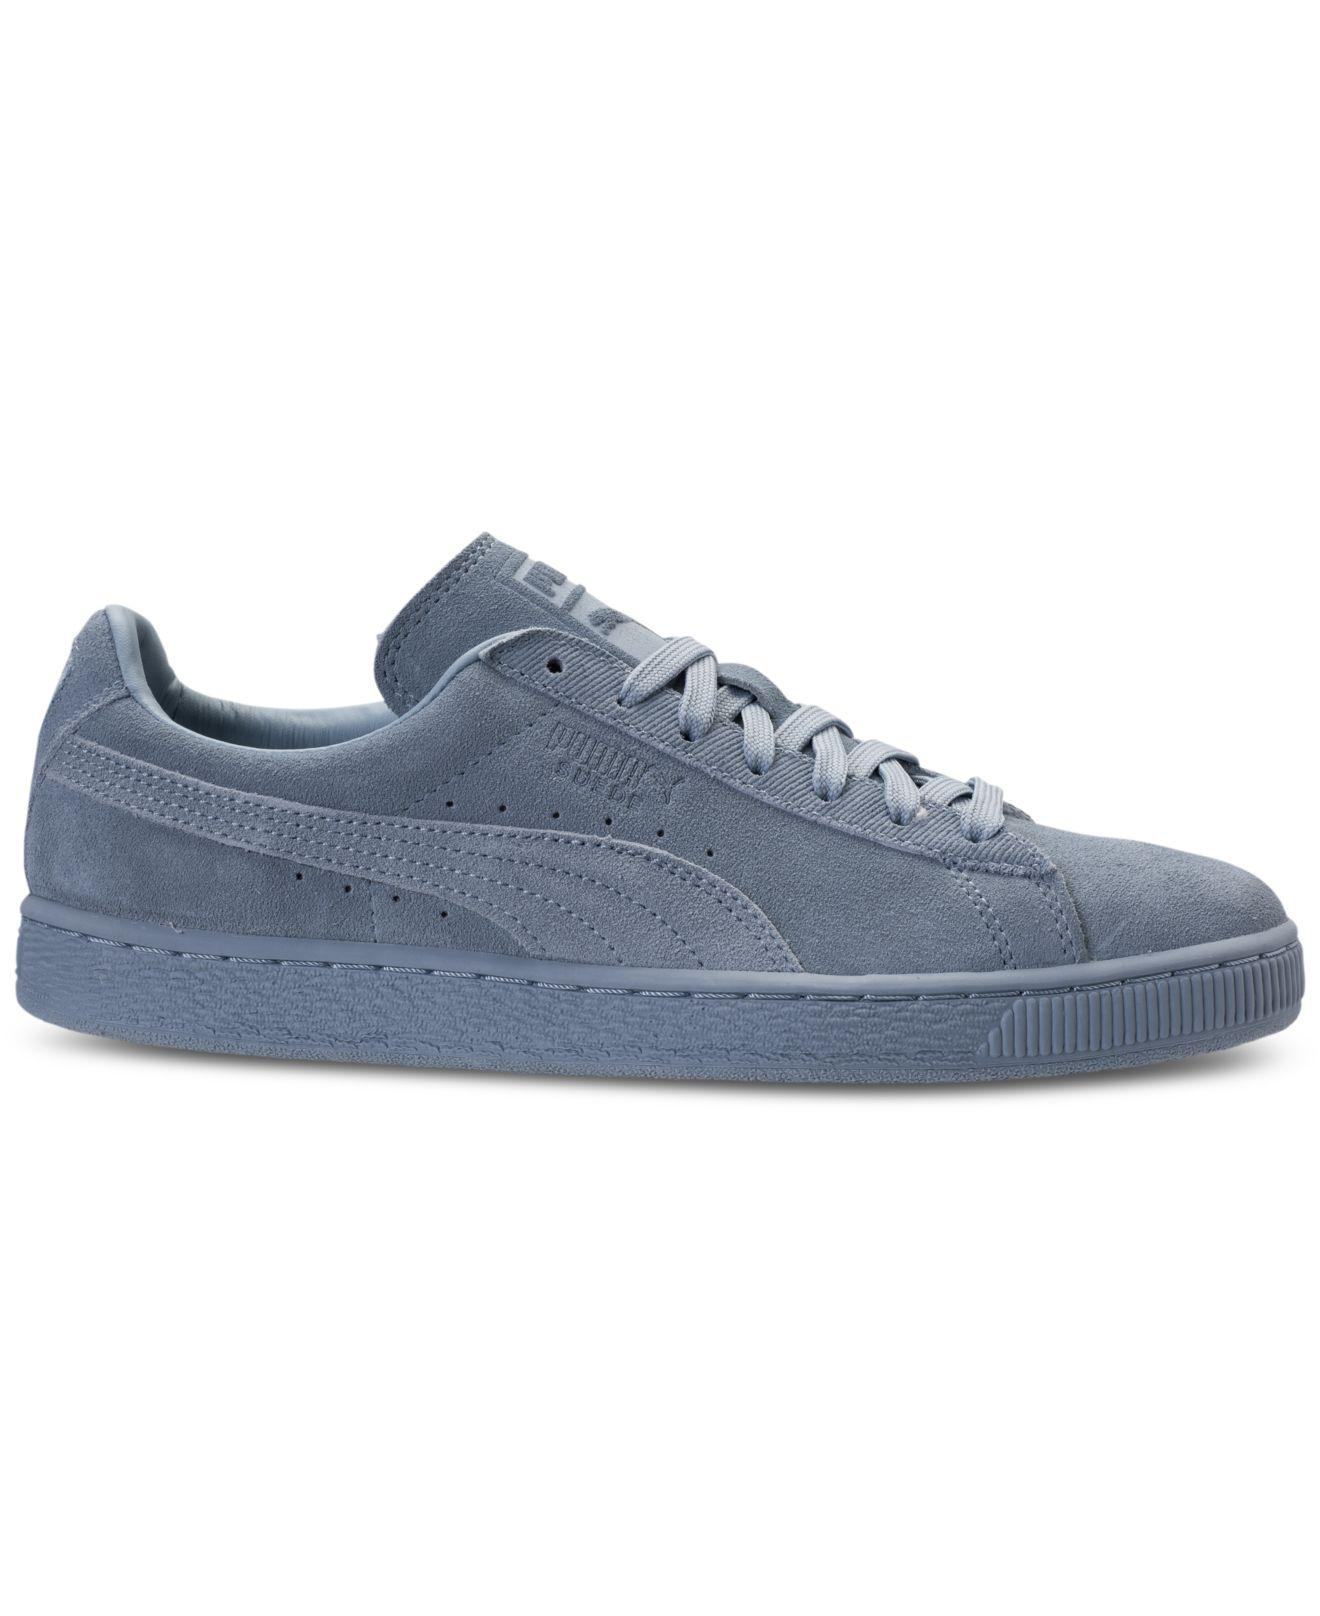 Lyst - Puma Men s Suede Classic Tonal Casual Sneakers From Finish ... d0f52d0d3